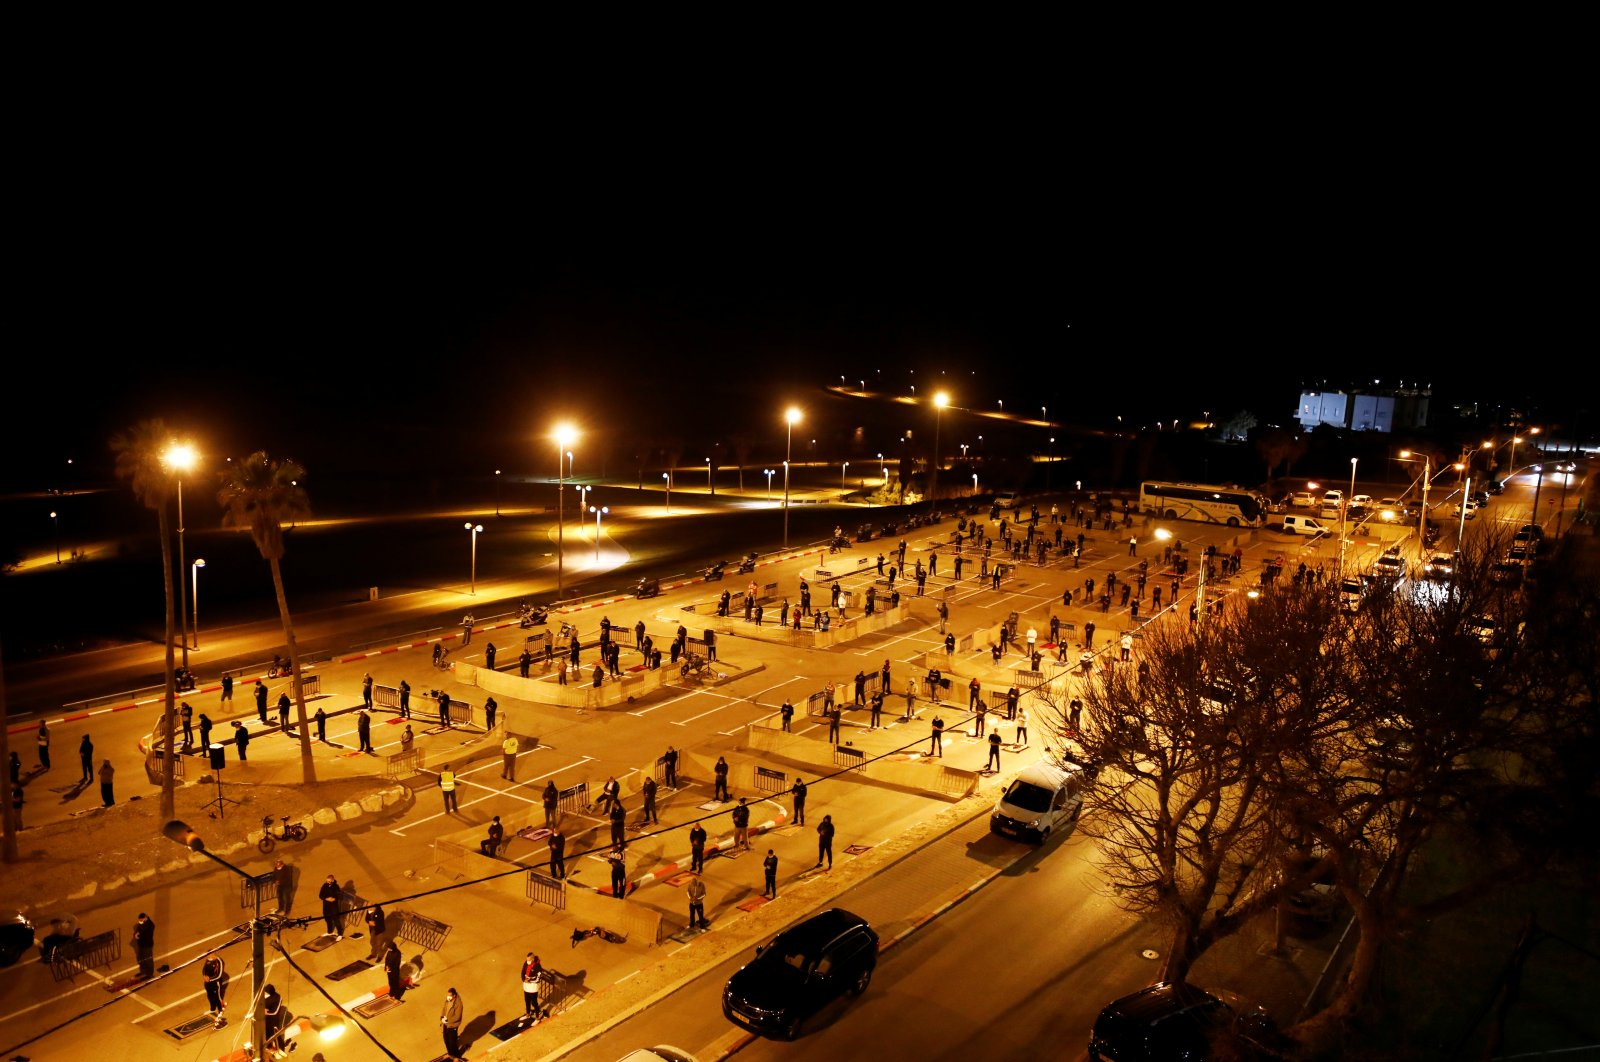 Muslim worshippers pray in an empty parking lot in the ancient Israeli port city of Jaffa for Ramadan prayers as mosques are closed due to the coronavirus pandemic, April 27, 2020. (Reuters Photo)